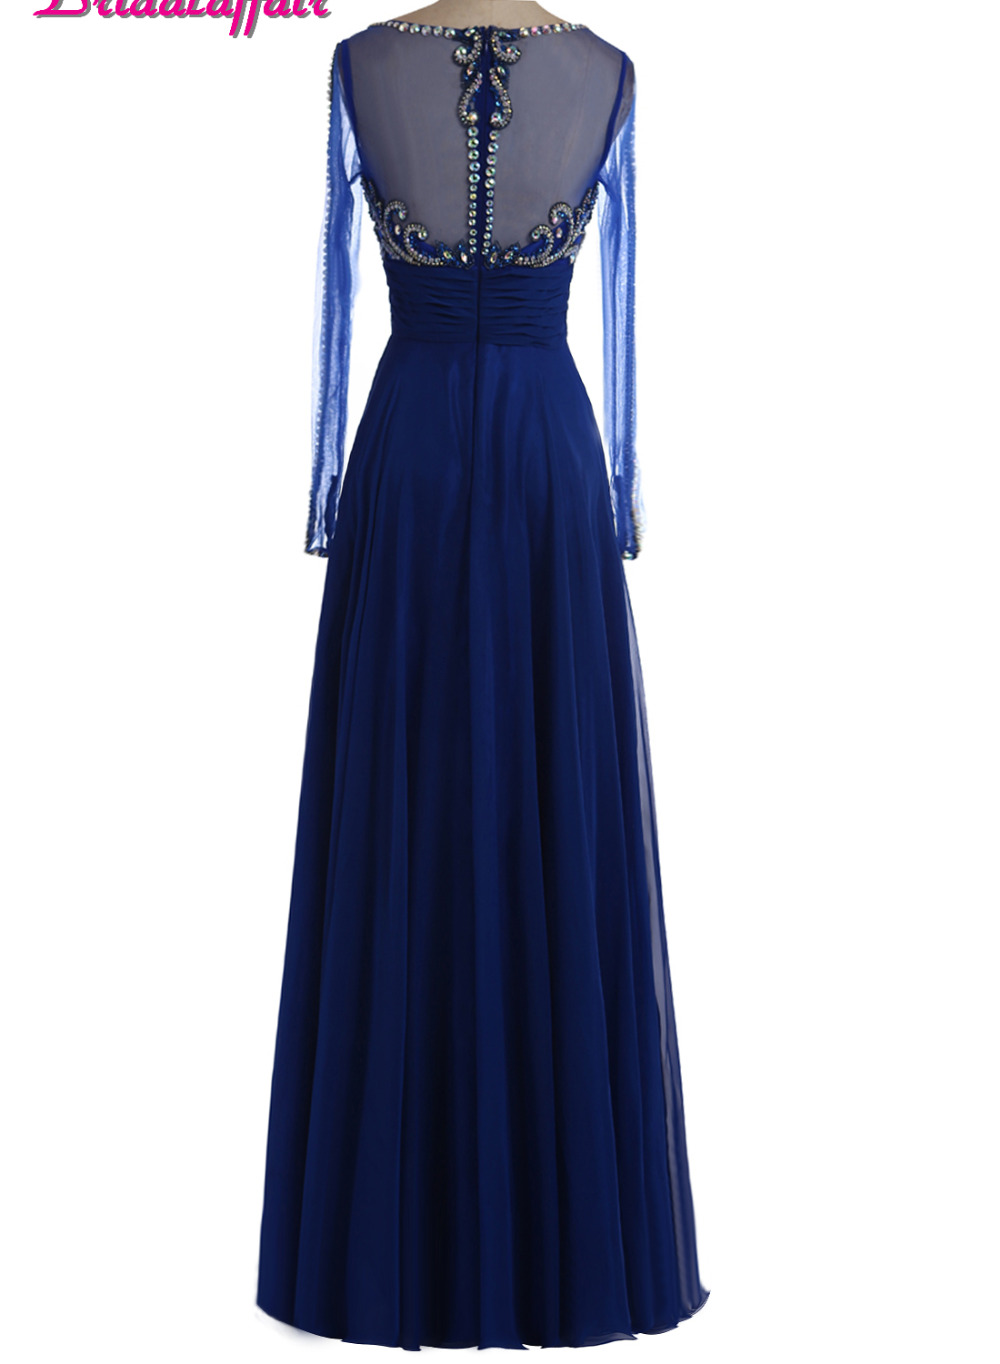 b4be4897304 BridalaffairReal Photo Vestido de festa Deep Blue Beads Prom Dresses 2018  Scoop Neck Long Sleeve Party Prom Dress Robe de soiree-in Prom Dresses from  ...